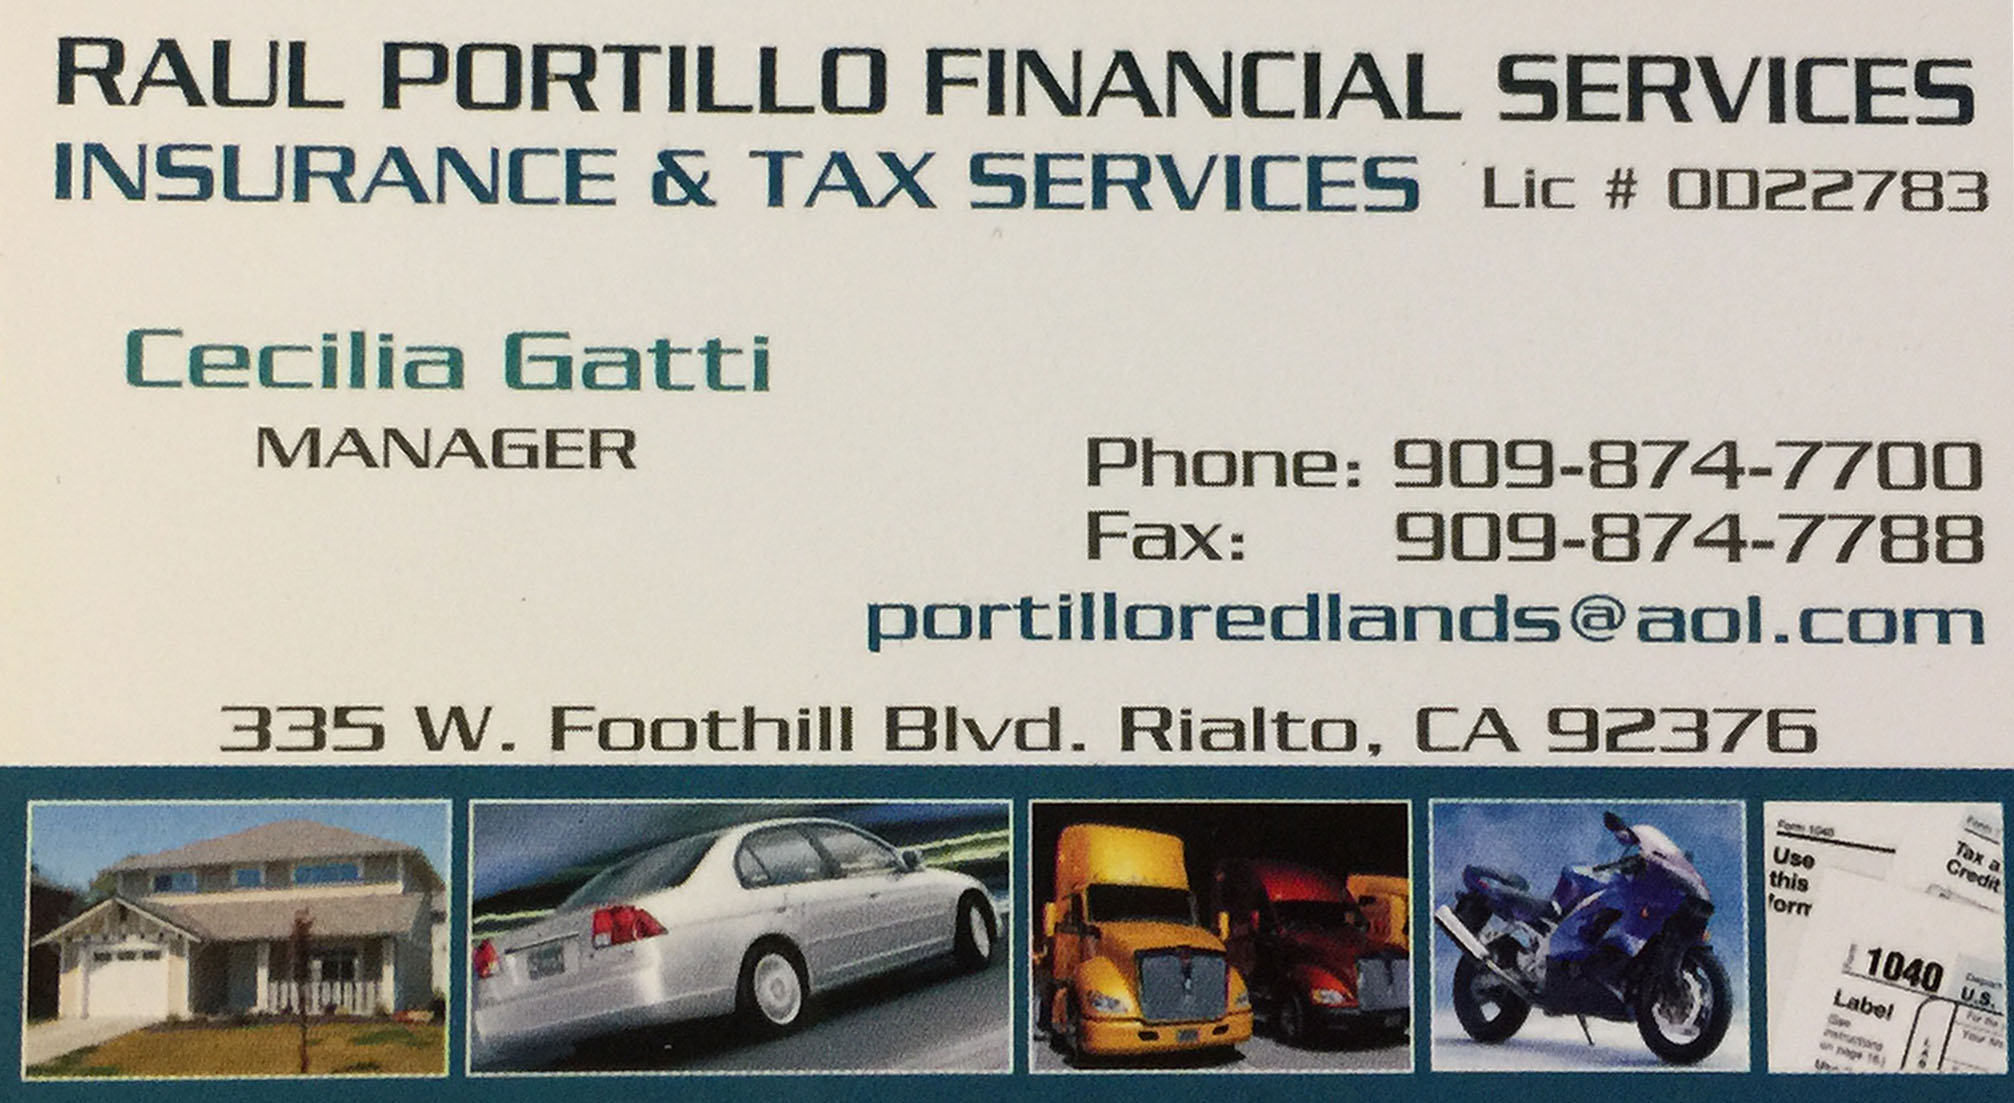 Raul Portillo Financial Services